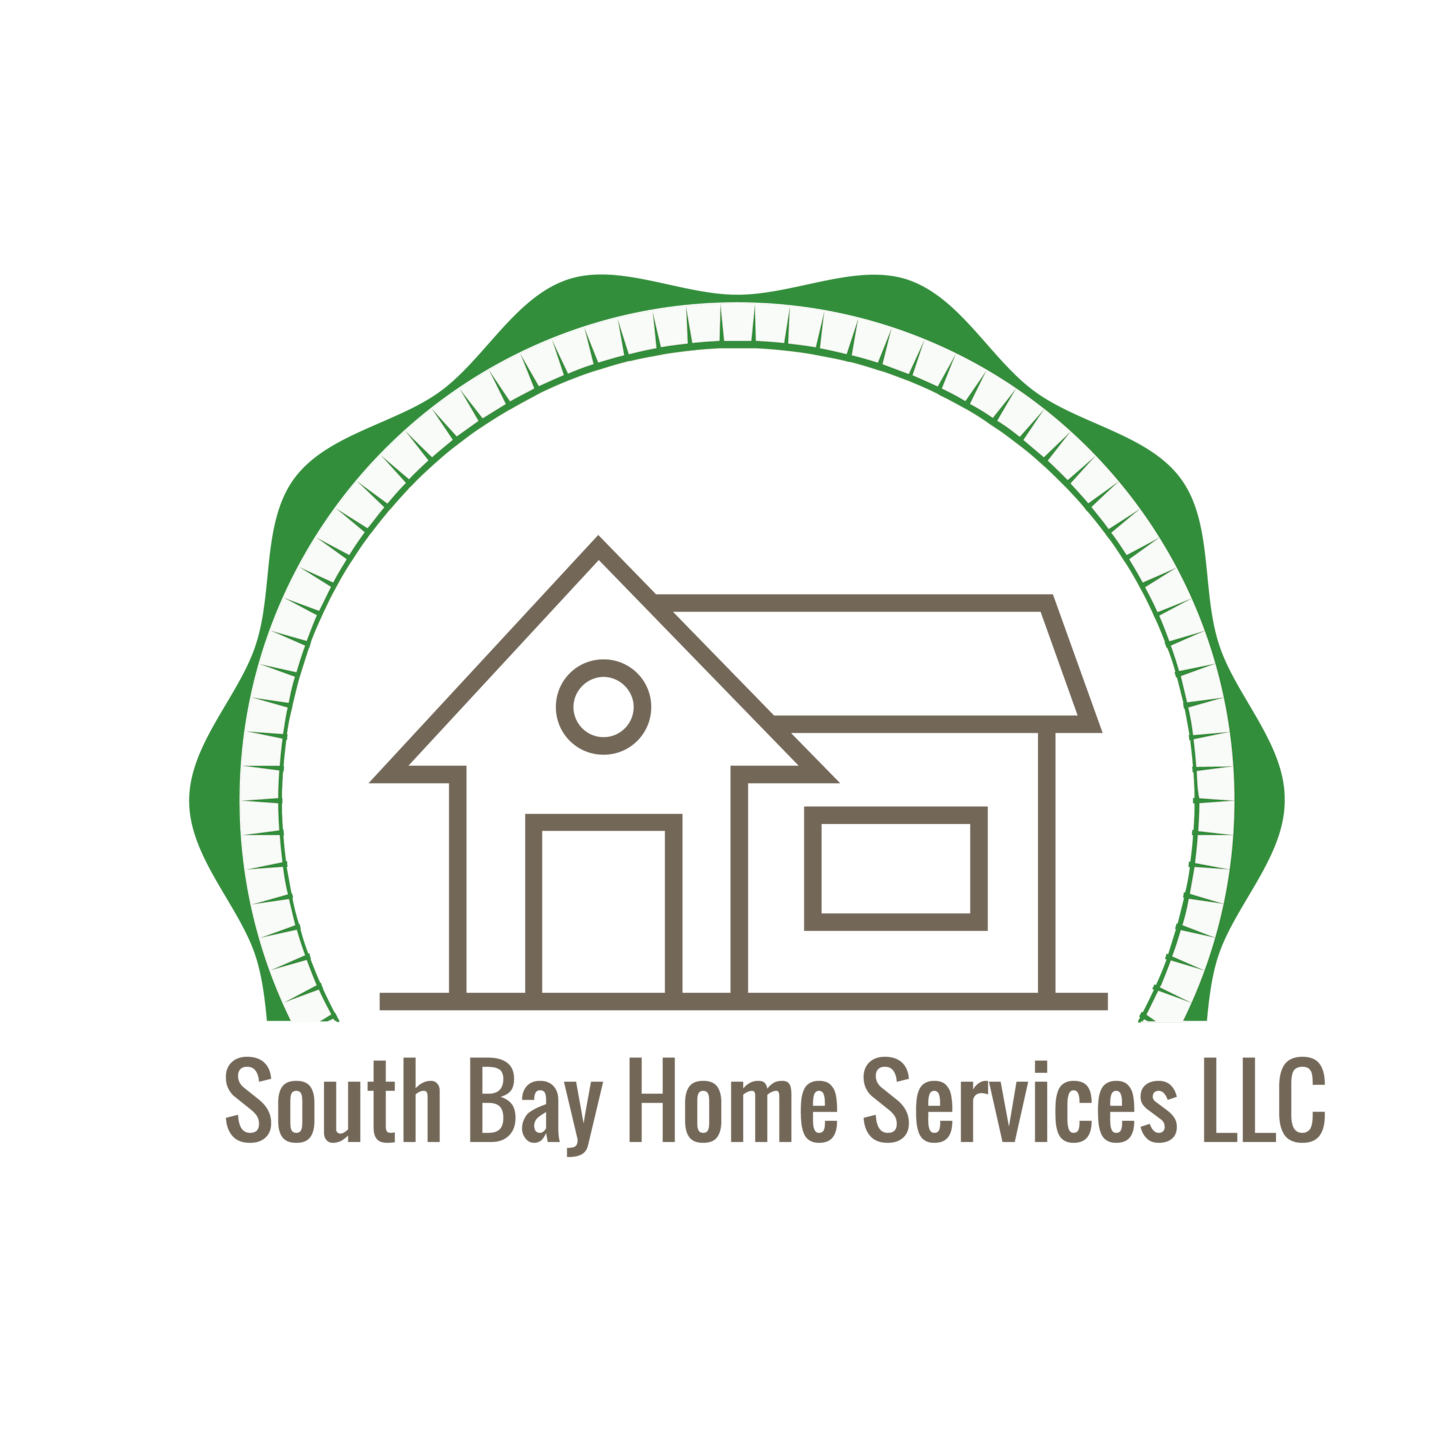 South Bay Home Services, LLC